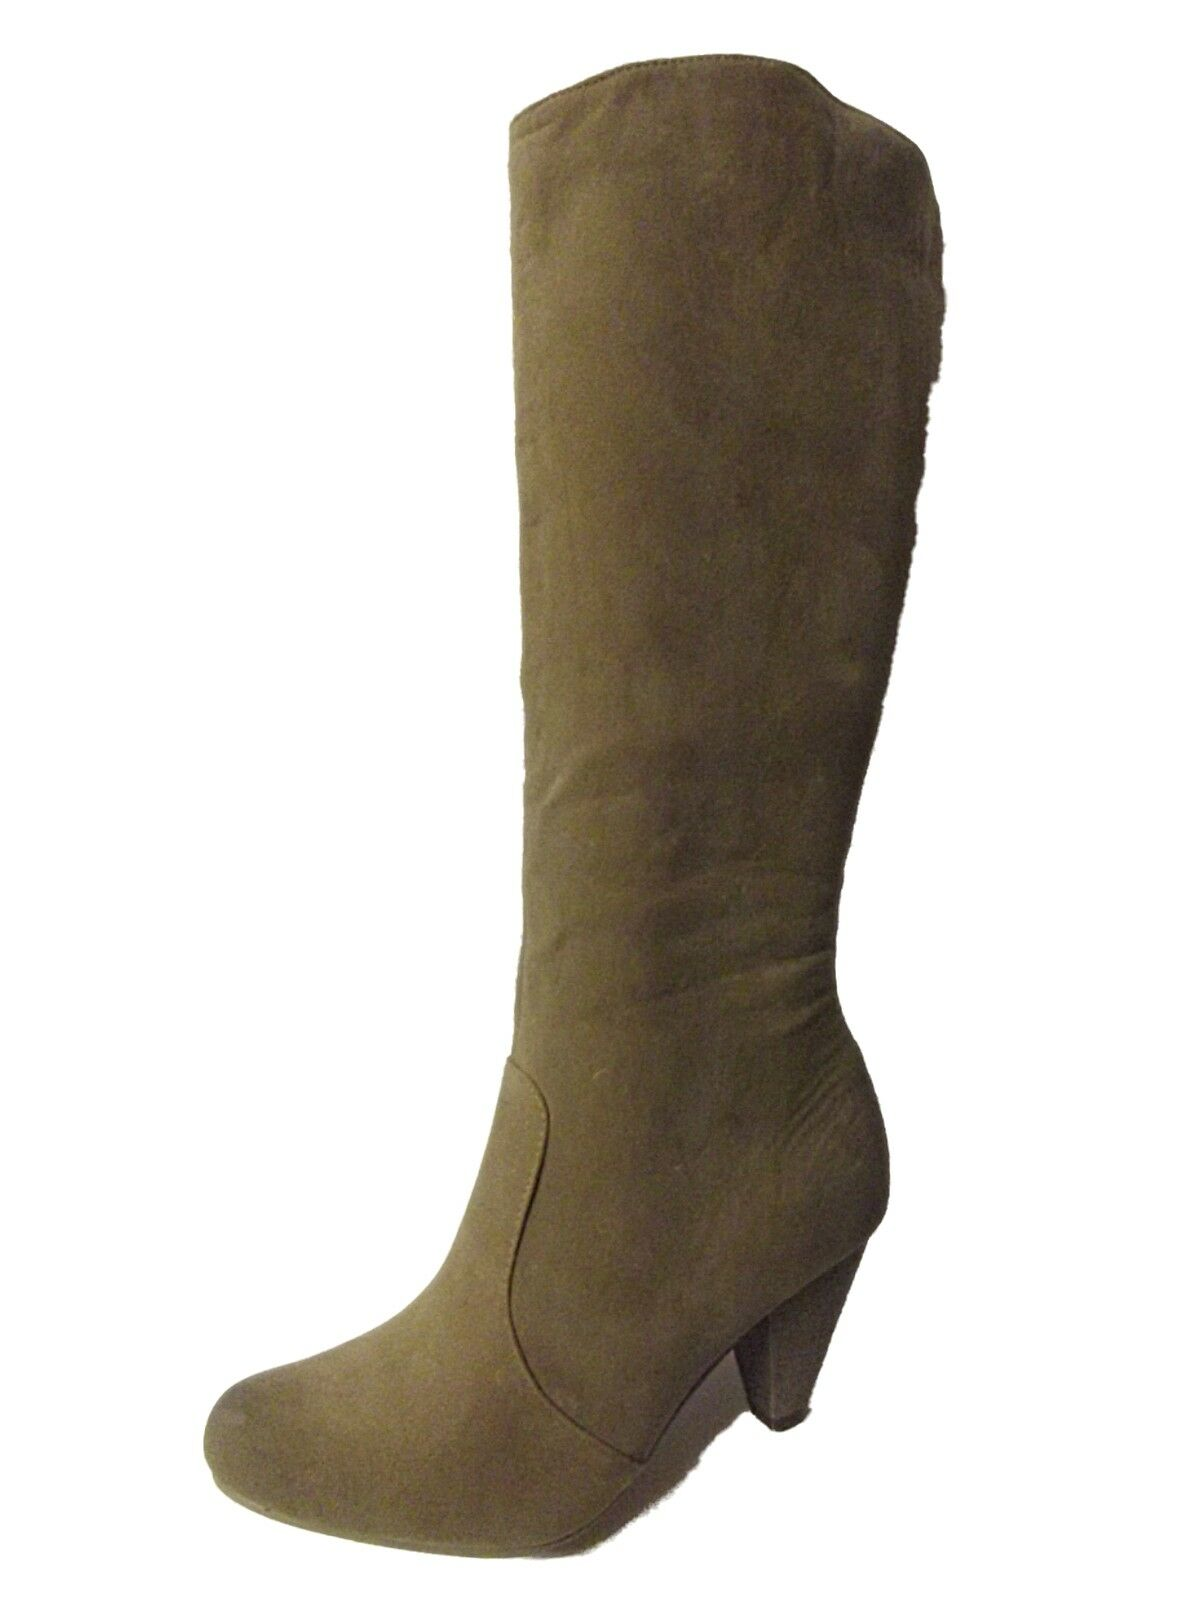 NEW LADIES EX STORE BEIGE FAUX SUEDE HEELED KNEE HIGH TALL BOOTS SZ 8 9 10 TV TS